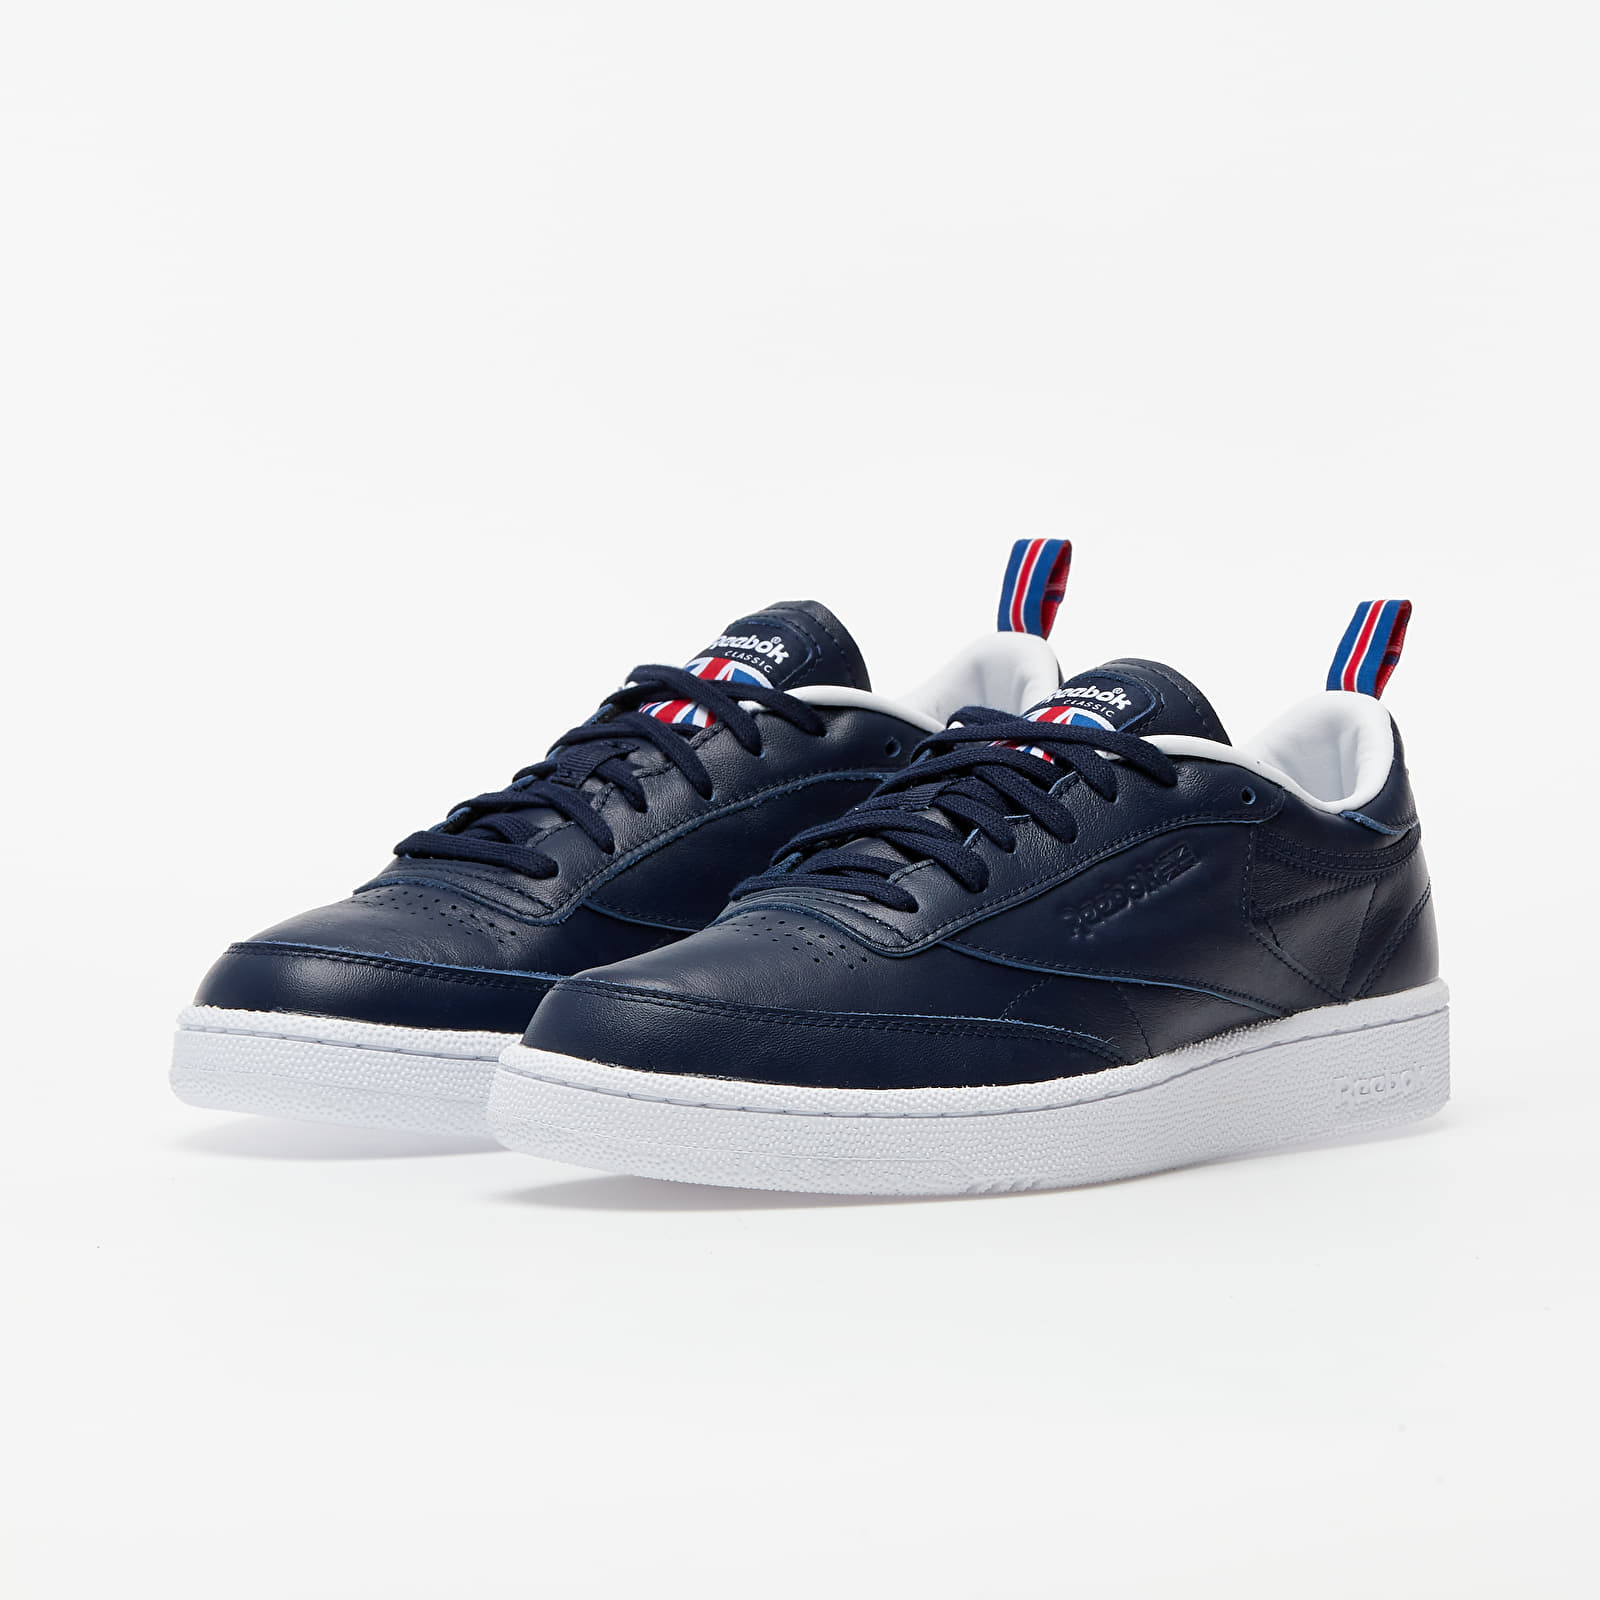 Reebok Club C 85 Vector Navy/ White/ Vector Red, Blue